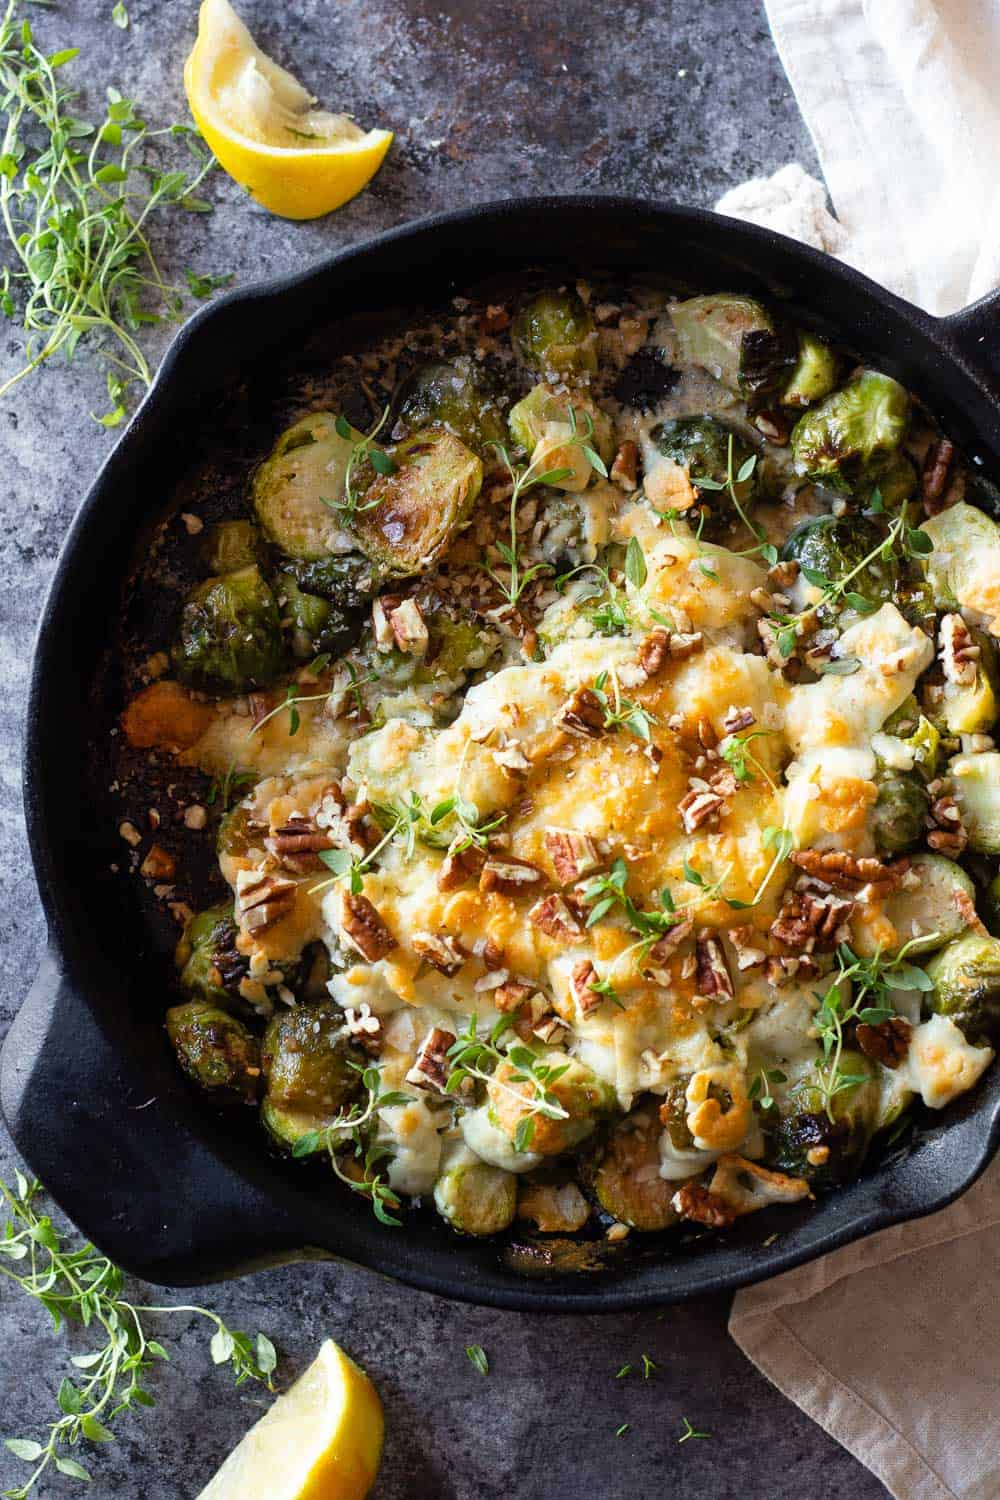 Brussels Sprouts in a black cast iron pan with melted cheese on top